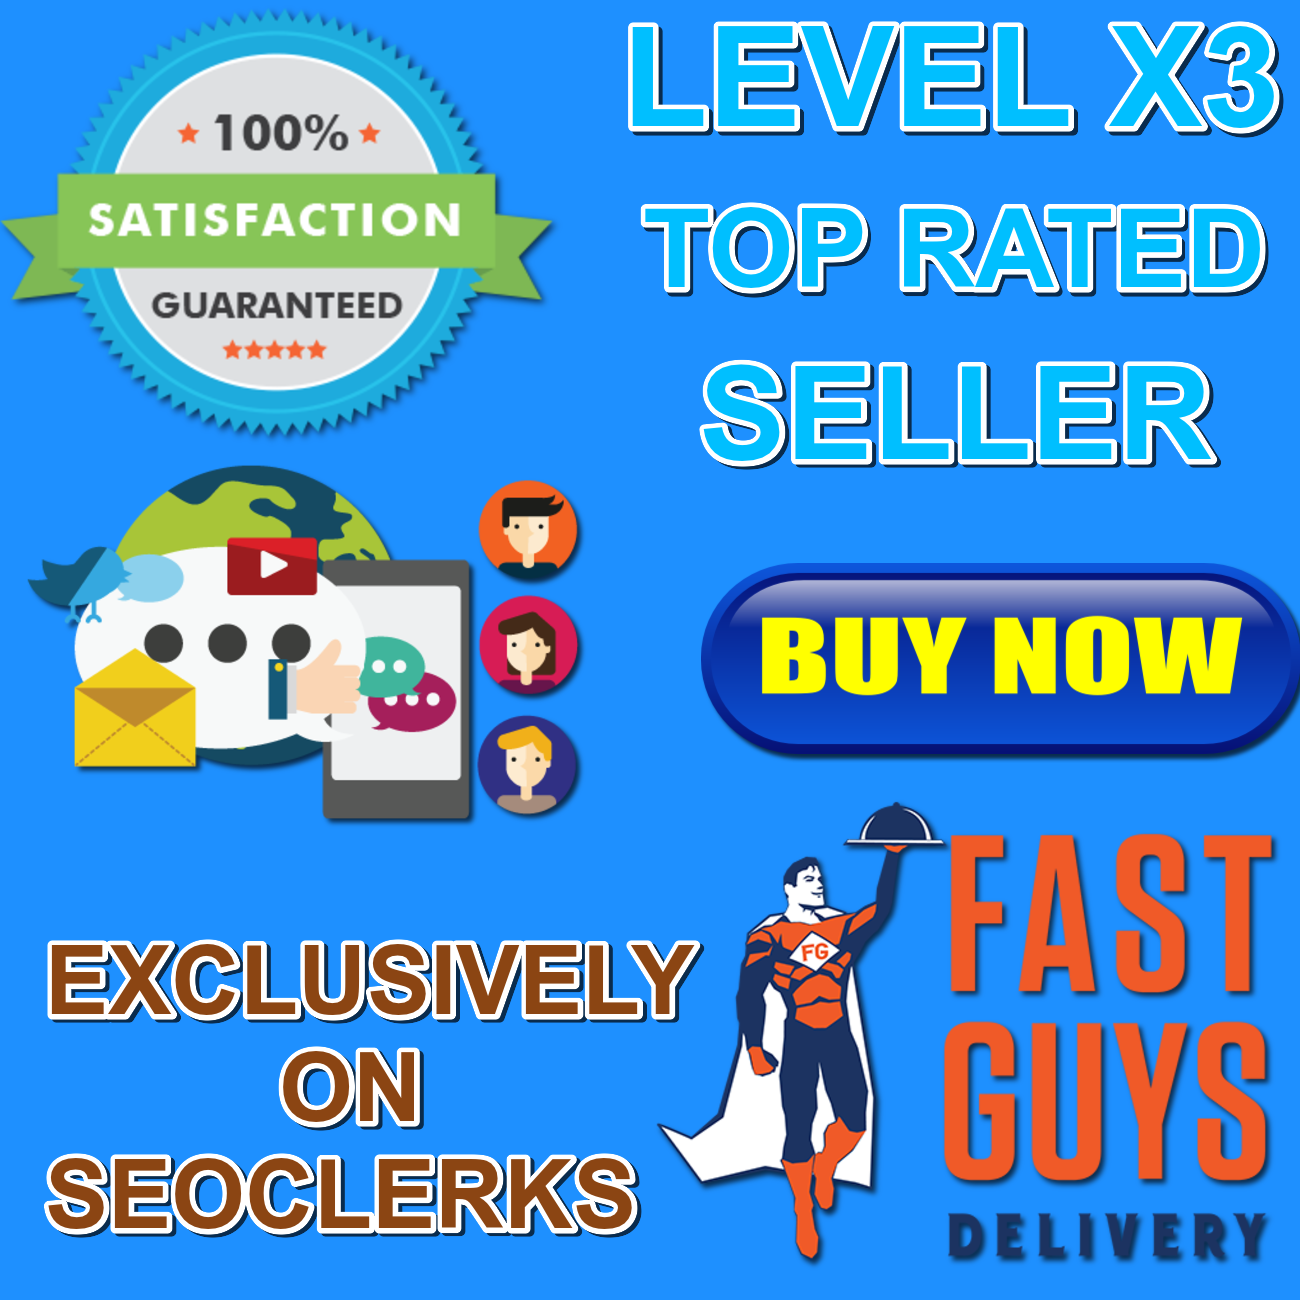 Add 200+ Profile Followers Promotions Fan Page To Your Social Media Network High Quality SEO Services Safe Non Drop Guarantee